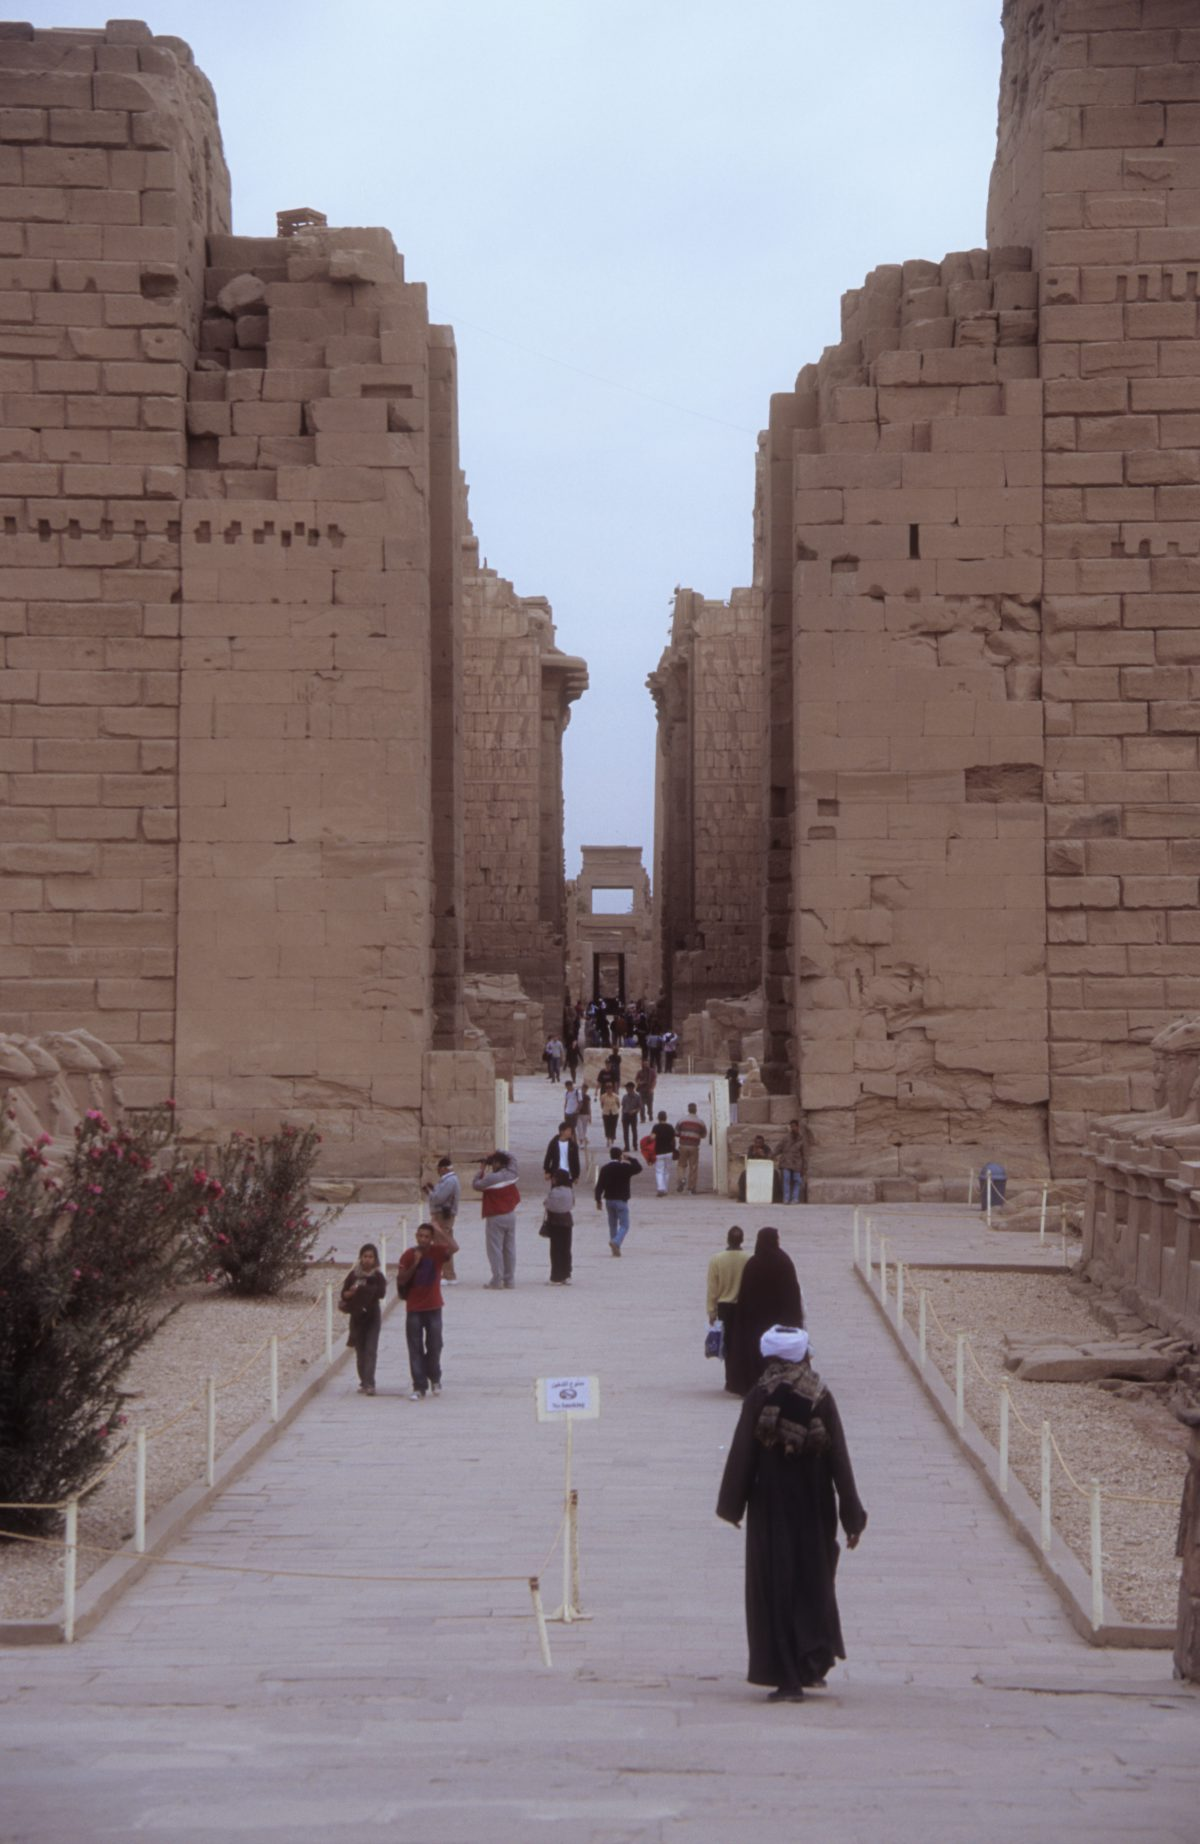 Luxor Temple - A large Egyptian Temple complex., landmark, alley, people, walk